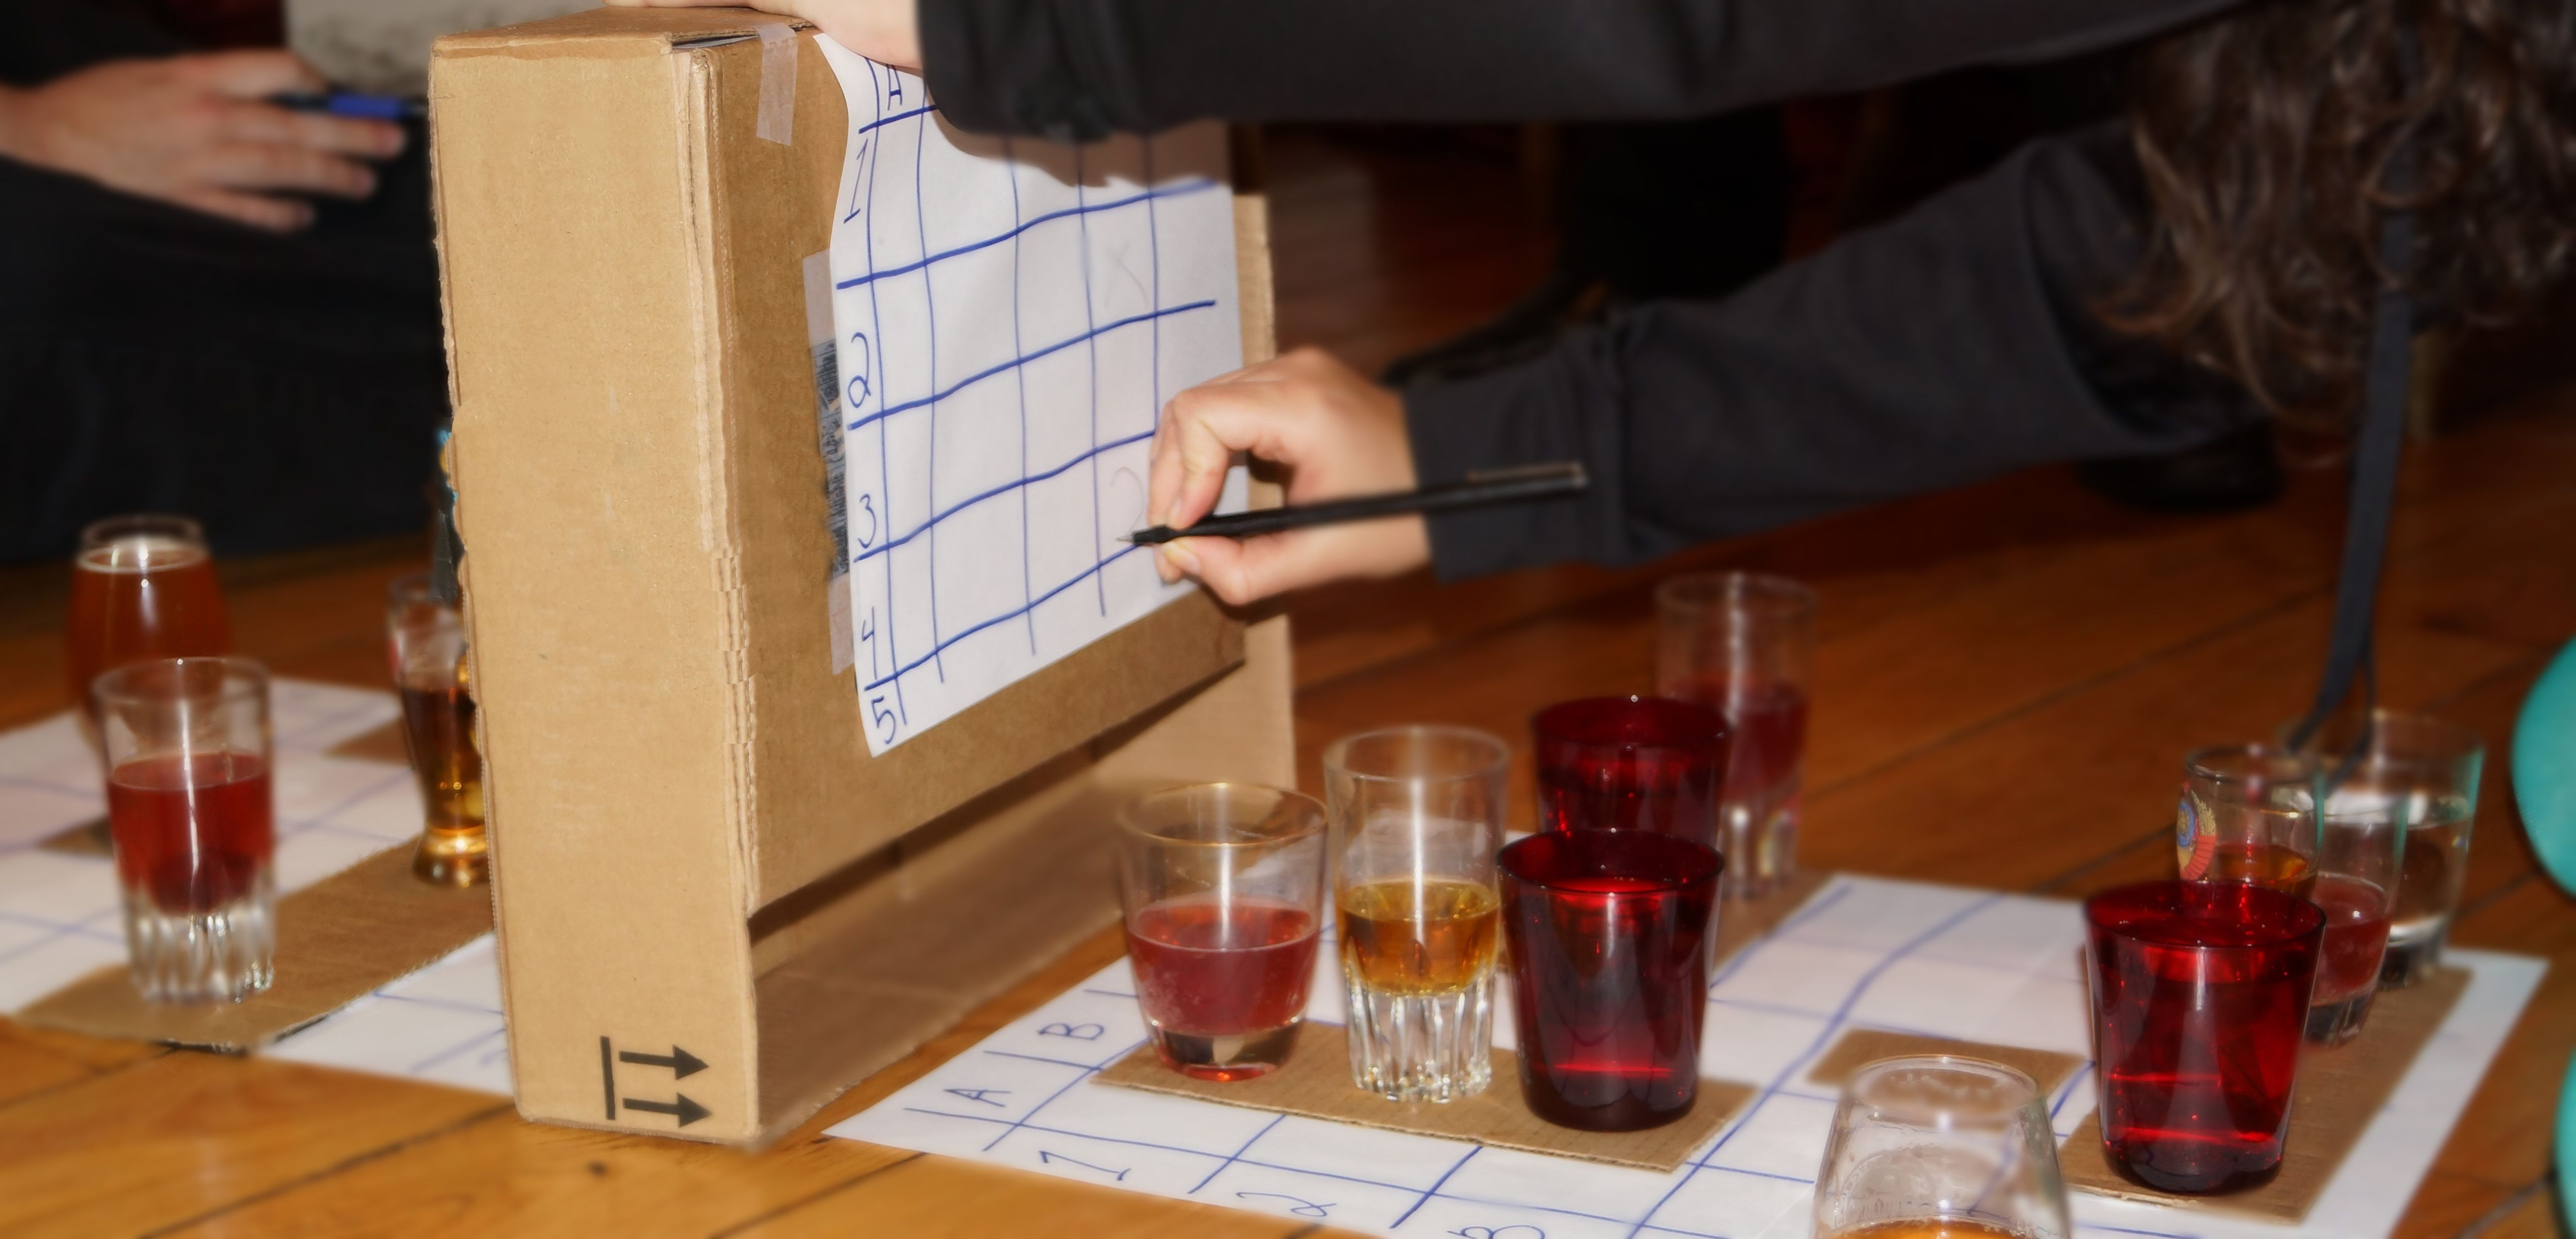 10 Drinking Games for Two People (With images) Drinking